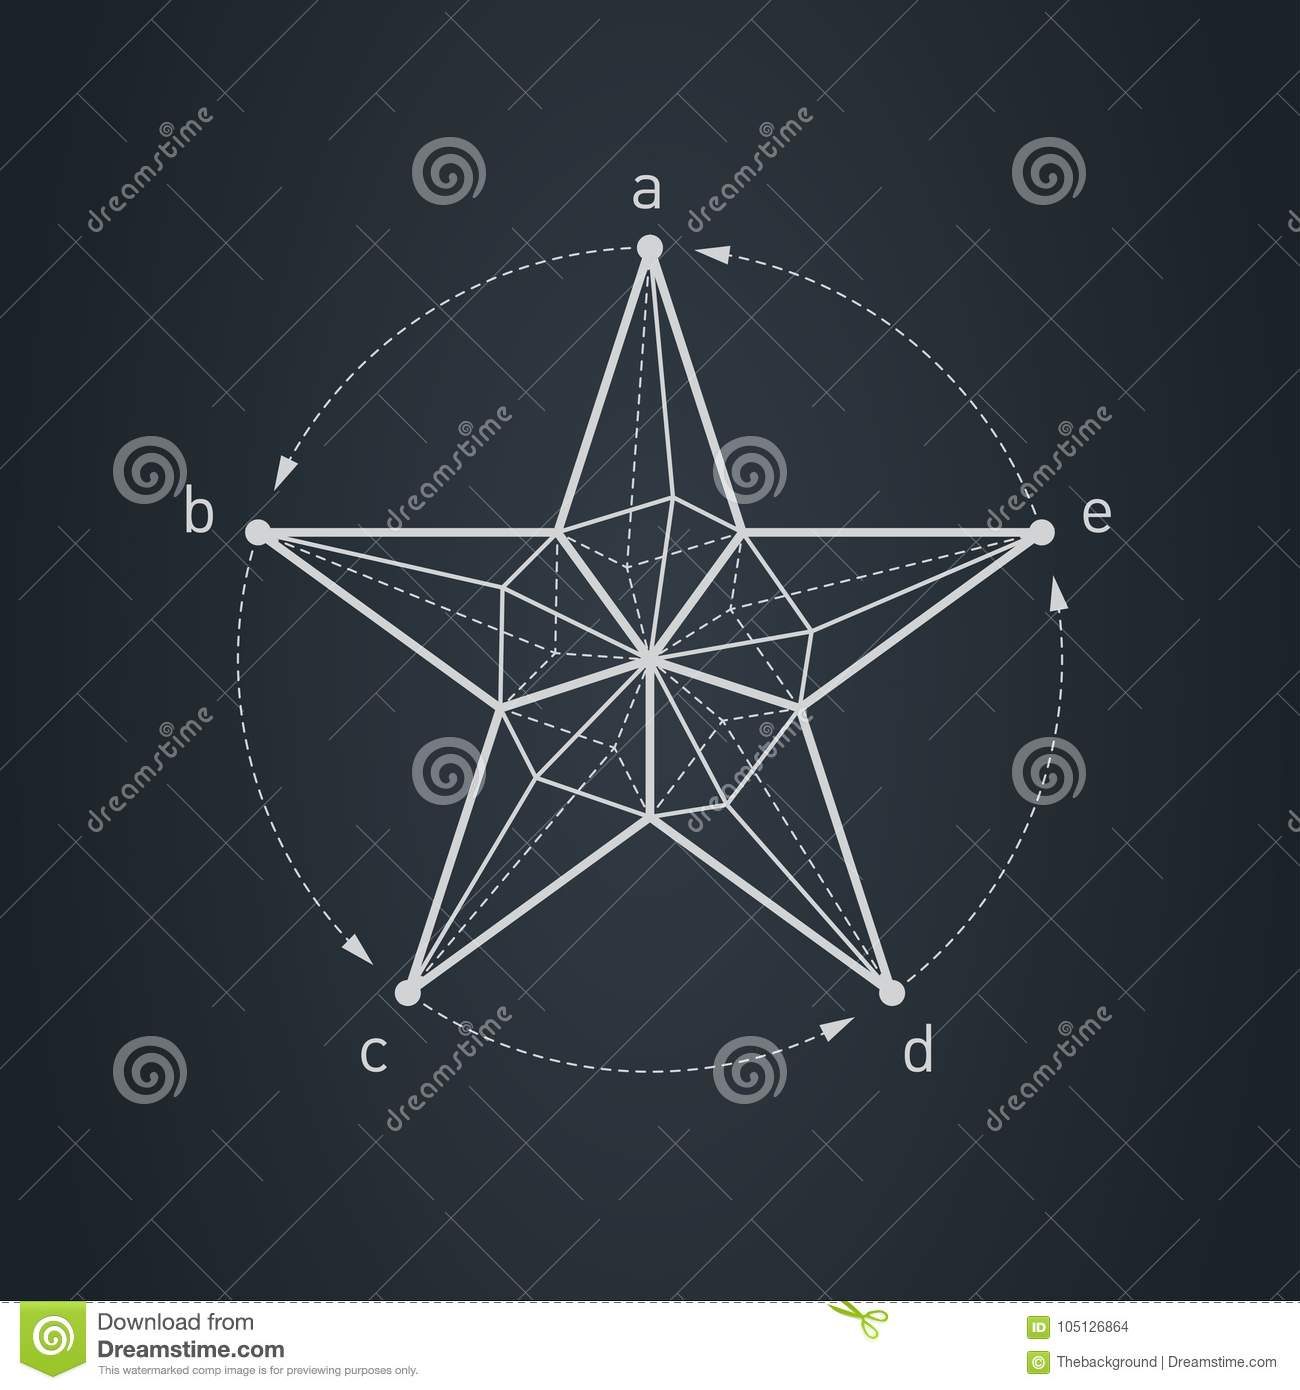 Blueprint Of Star  Design Element With Triangles And Rhombus